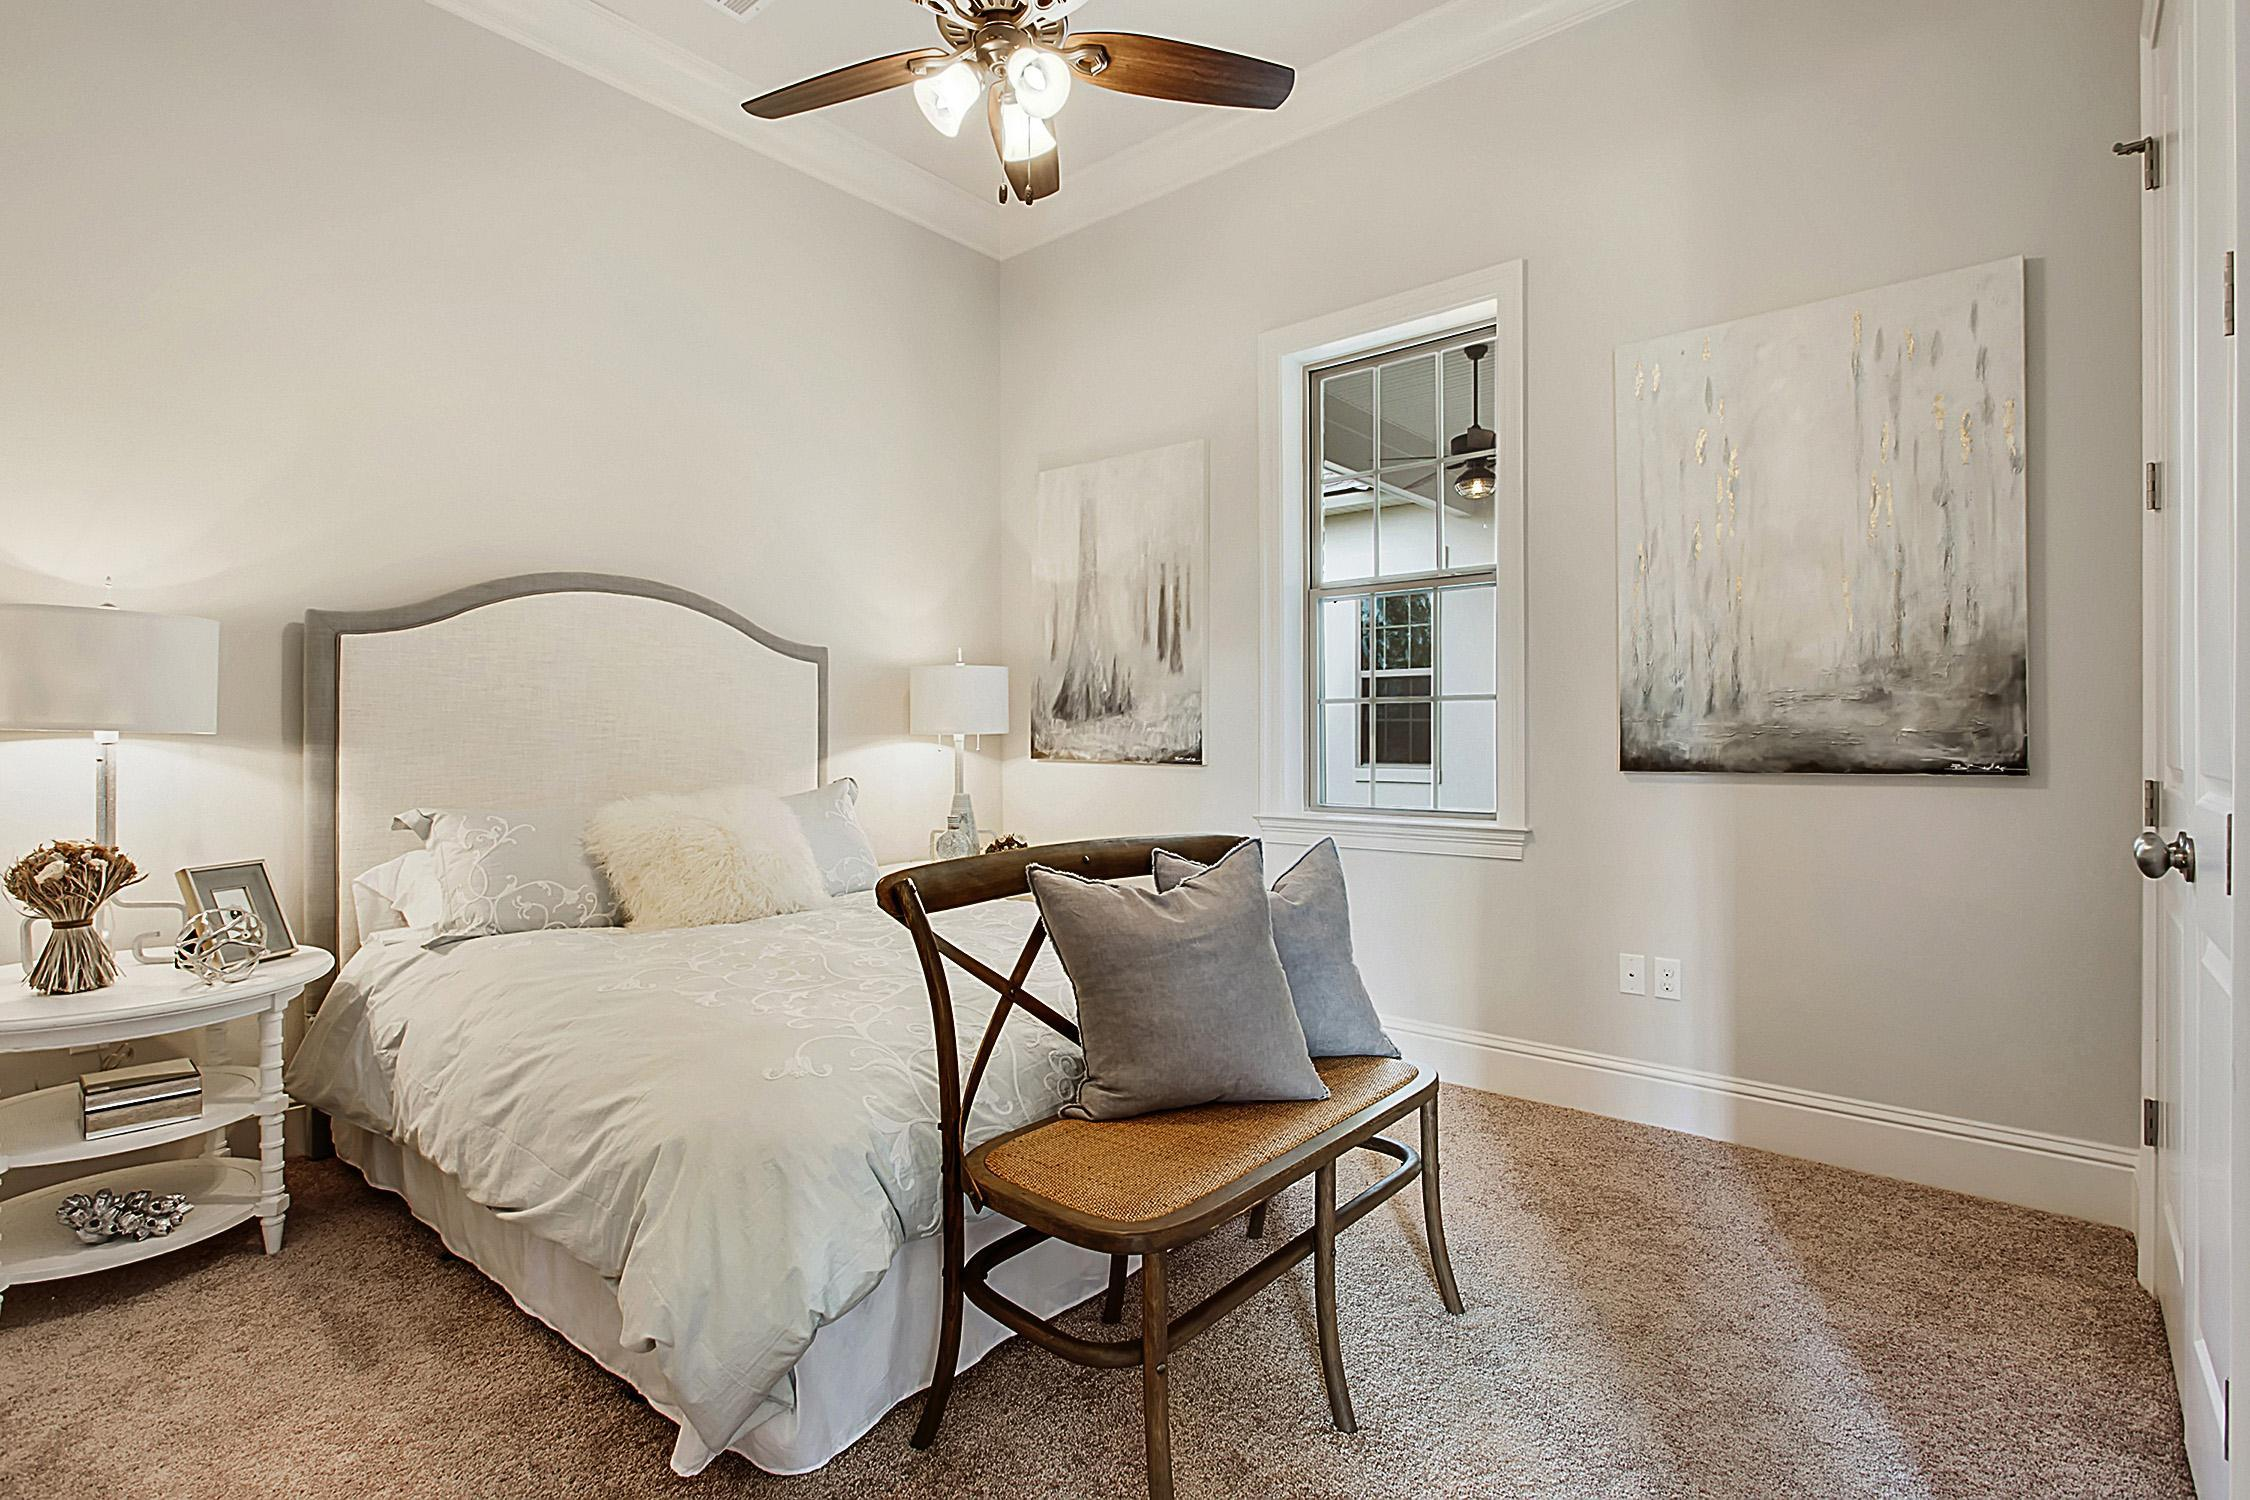 Bedroom featured in the Bachman (Money Hill Courtyard) By Highland Homes in New Orleans, LA